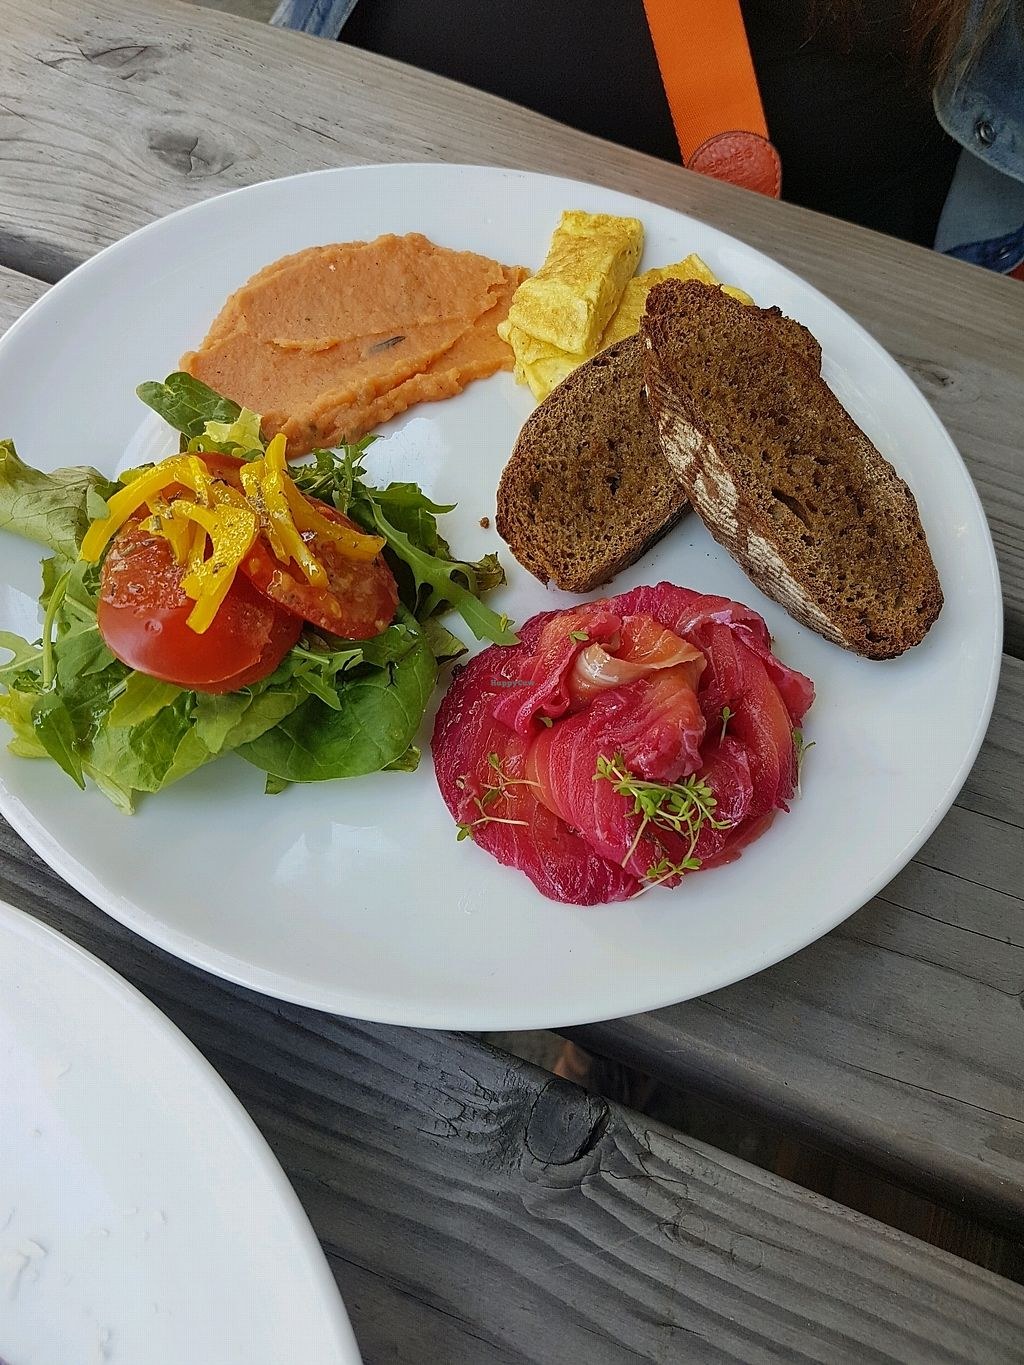 """Photo of GYS  by <a href=""""/members/profile/Zrinka"""">Zrinka</a> <br/>ontbijt: toast met zalm en zoete aardappel  <br/> August 27, 2017  - <a href='/contact/abuse/image/75386/297836'>Report</a>"""